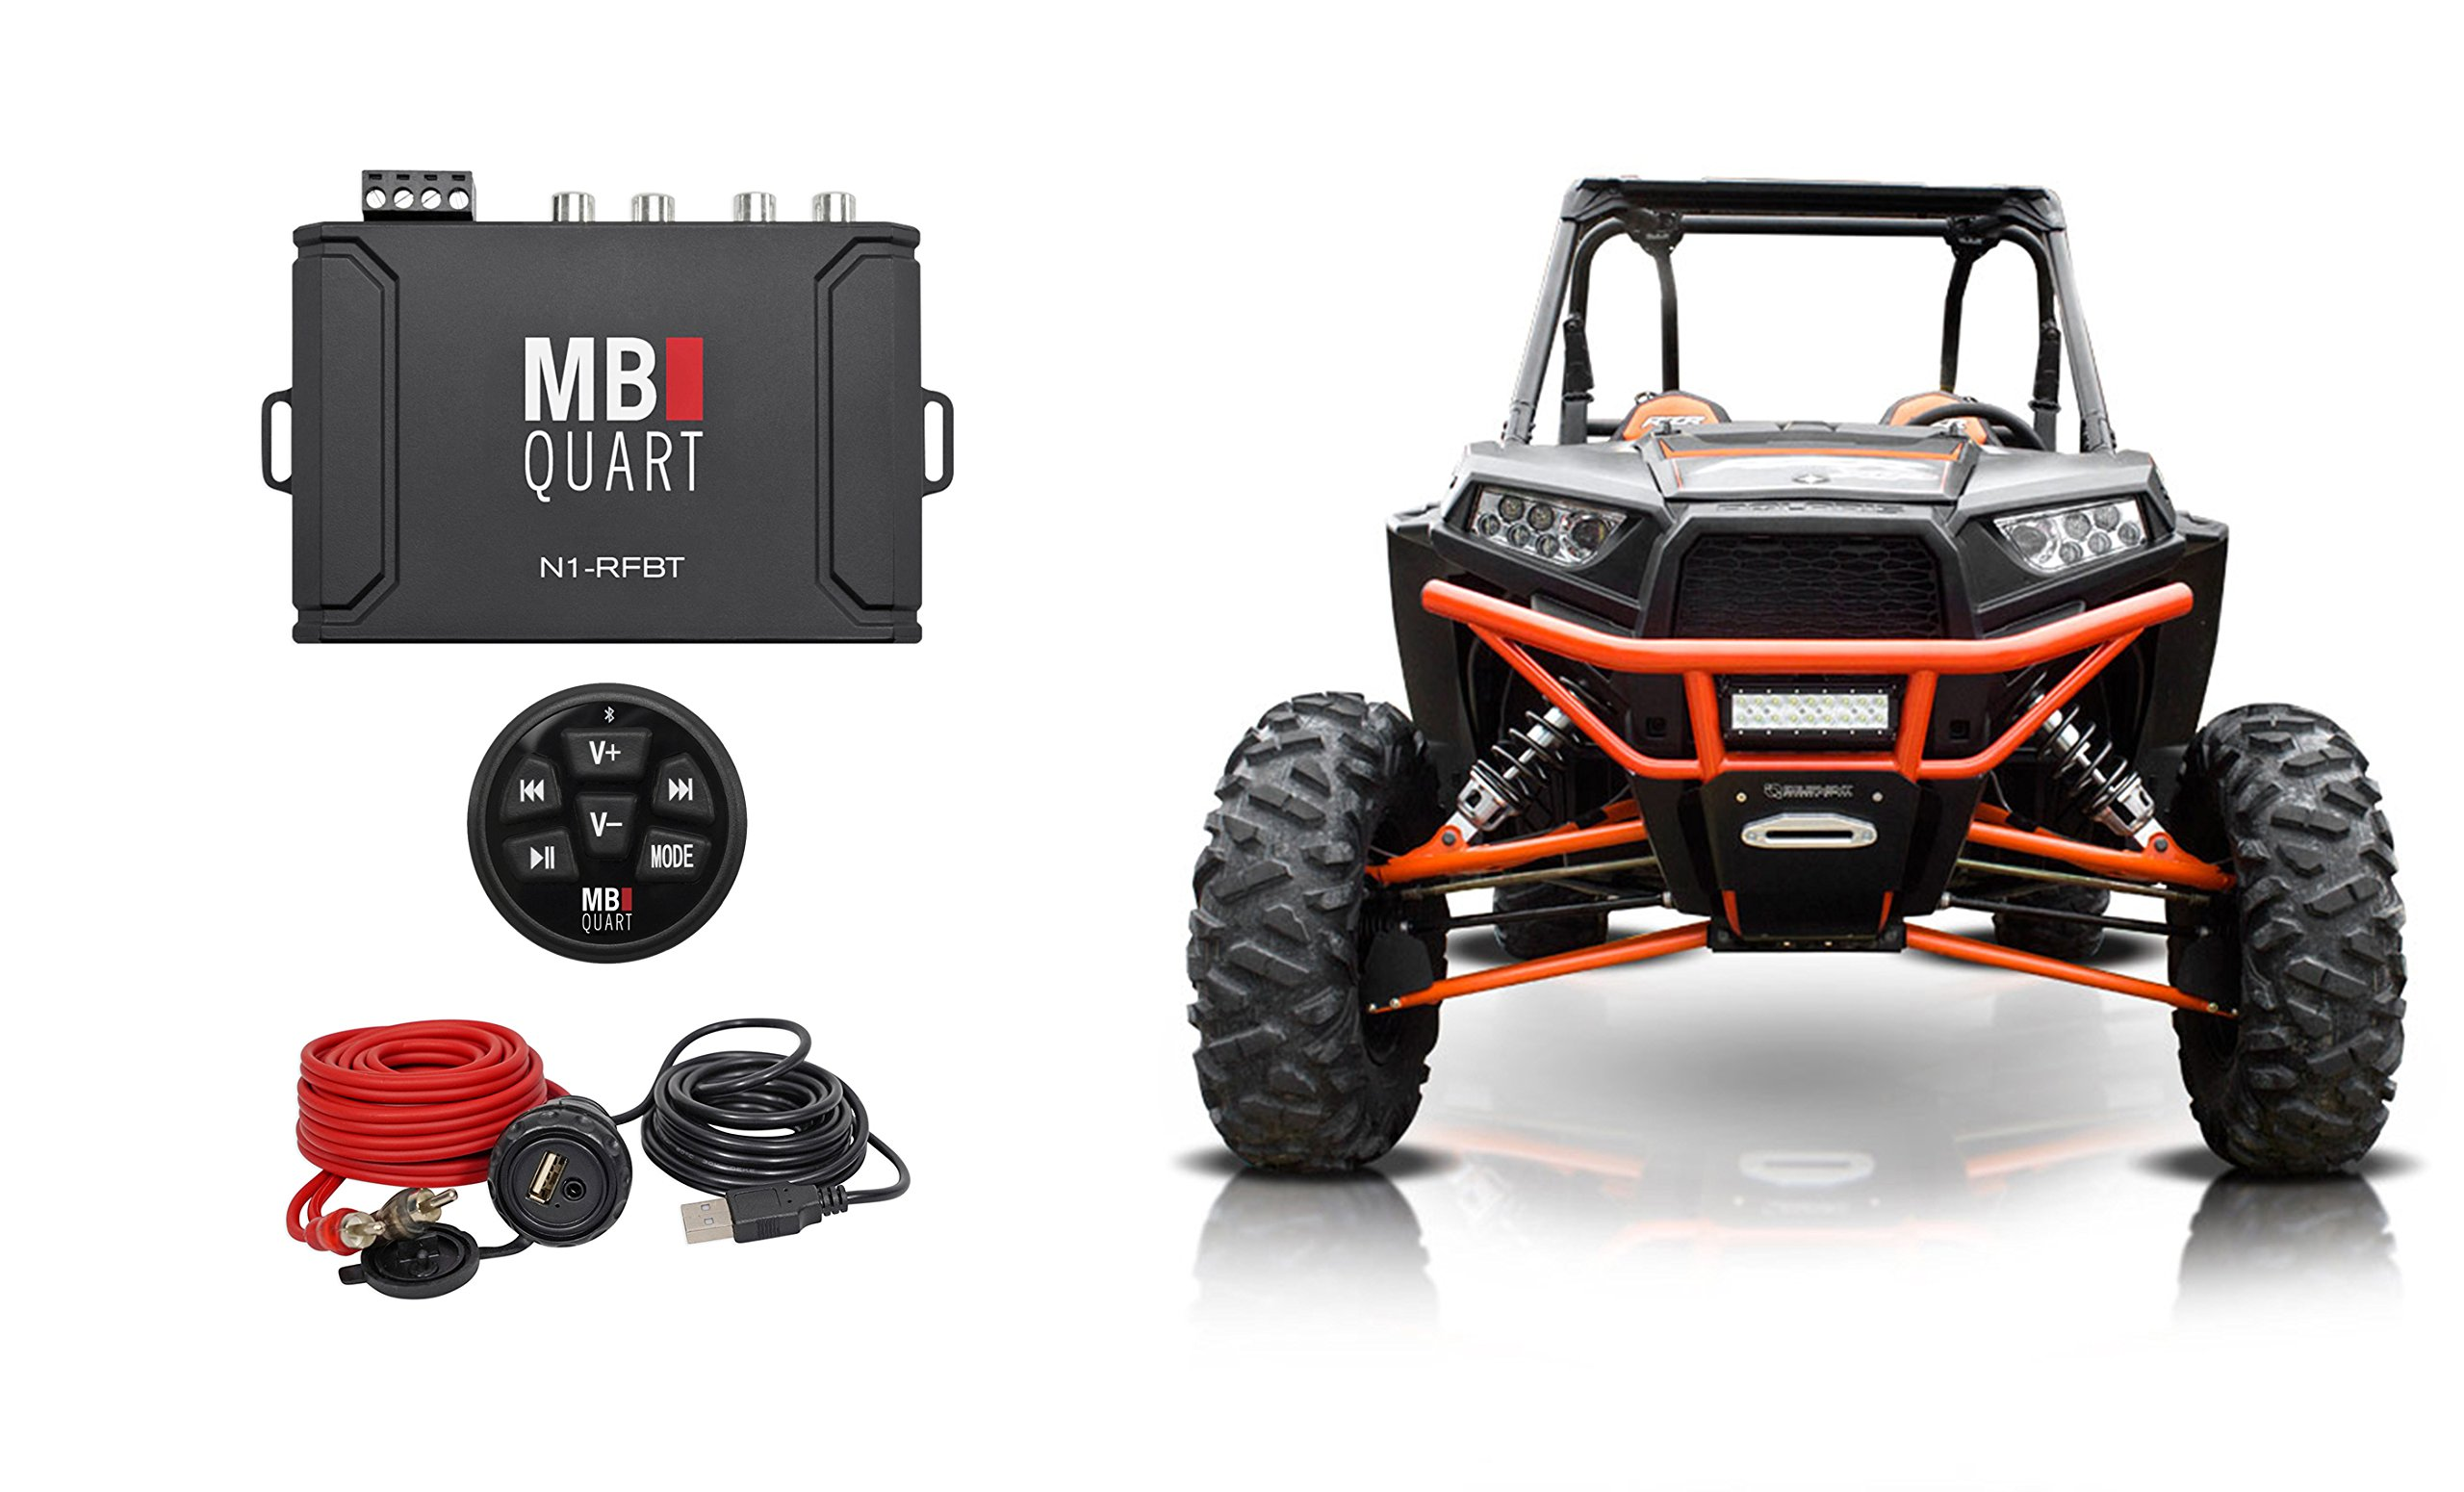 MB QUART N1-RFBT Wireless Bluetooth Preamp Controller+USB+3.5mm Plug ATV/UTV/RZR